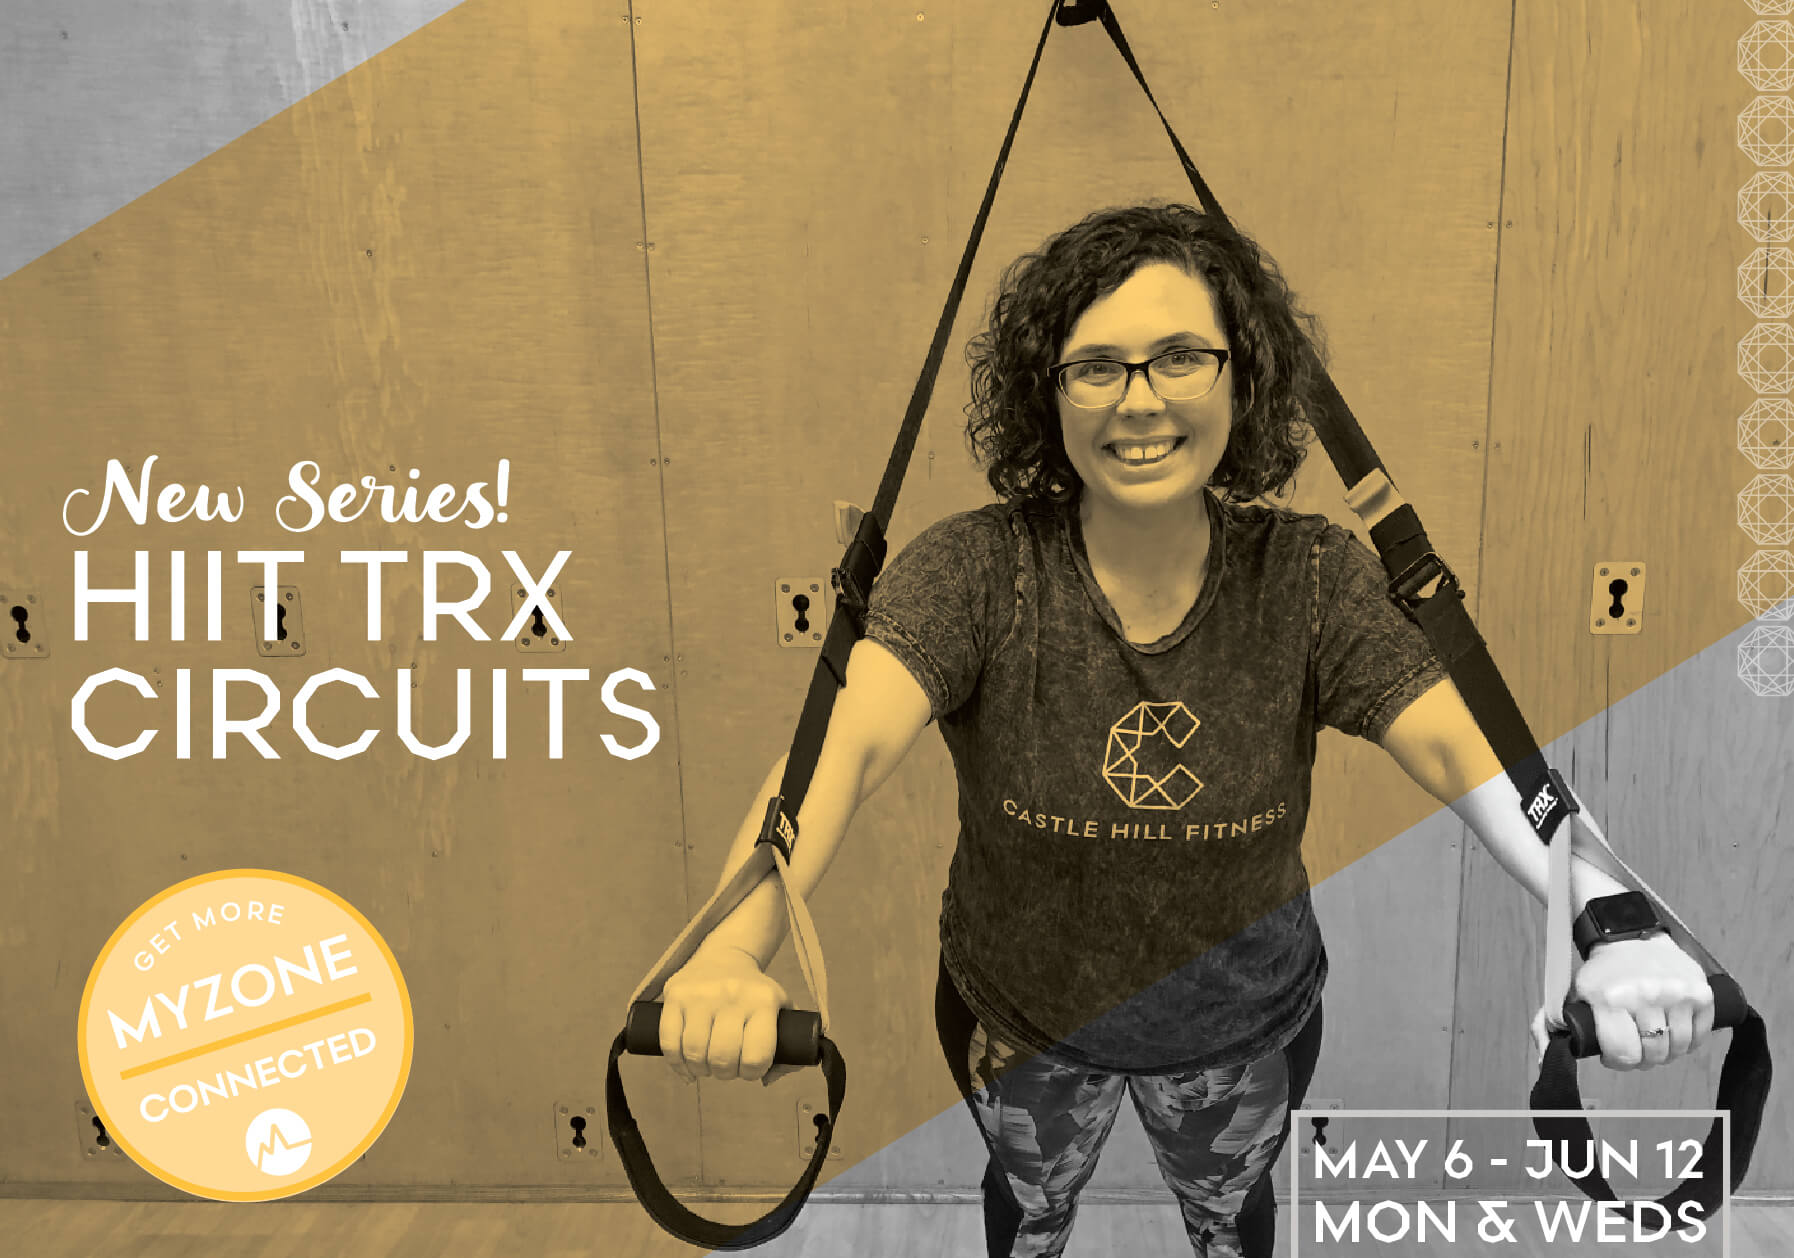 HIIT TRX Circuits